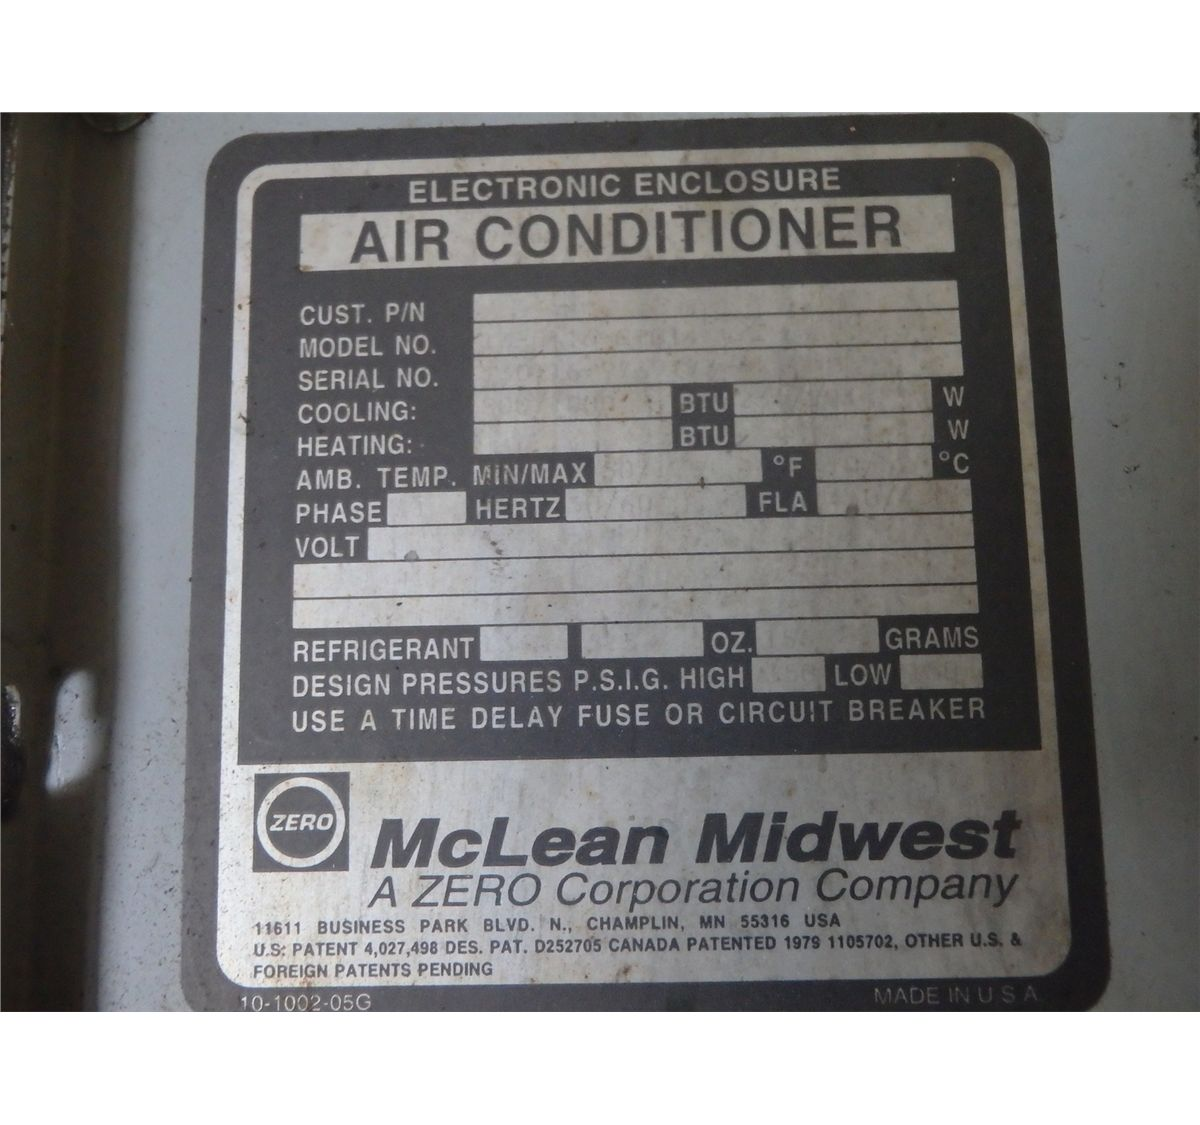 image 5 mclean midwest electrical box chiller air conditioner tag not legible [ 1200 x 1125 Pixel ]